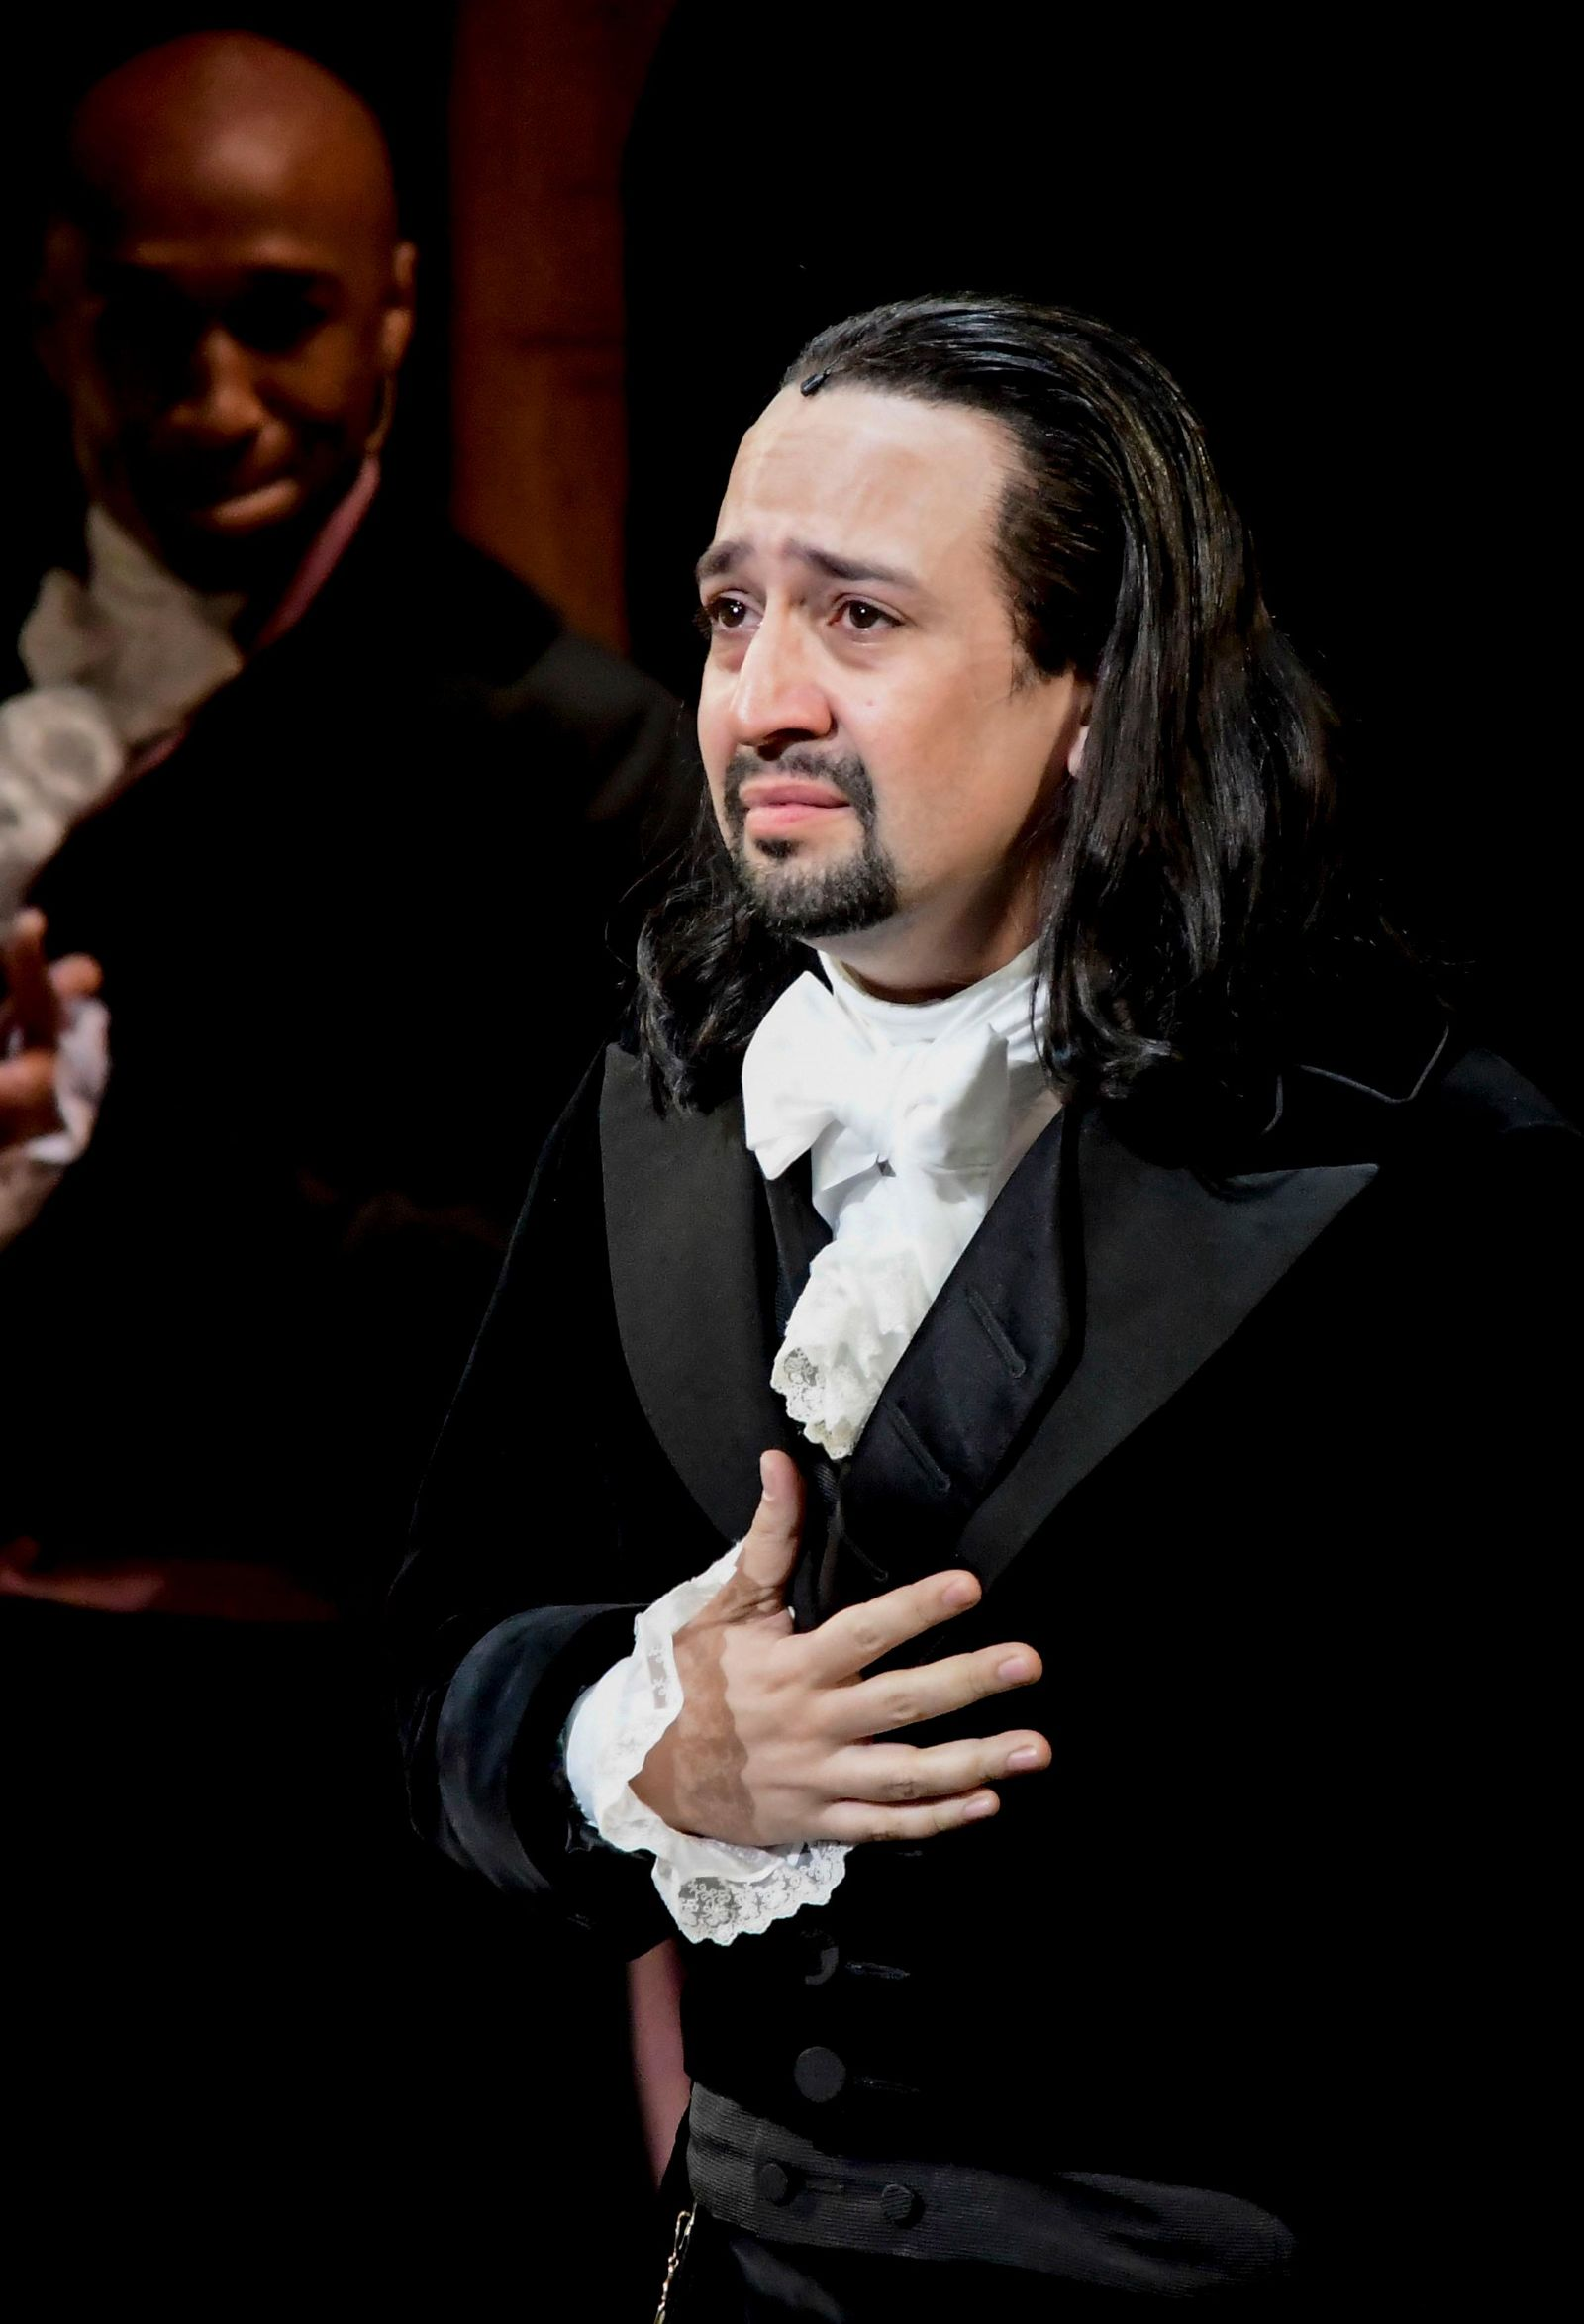 Lin-Manuel Miranda, composer and creator of the award-winning Broadway musical, Hamilton, receives a standing ovation with tears at the ending of the play's premiere held at the Santurce Fine Arts Center, in San Juan, Puerto Rico, Friday, Jan. 11, 2019. The musical is set to run for two weeks and will raise money for local arts programs. (AP Photo/Carlos Giusti)